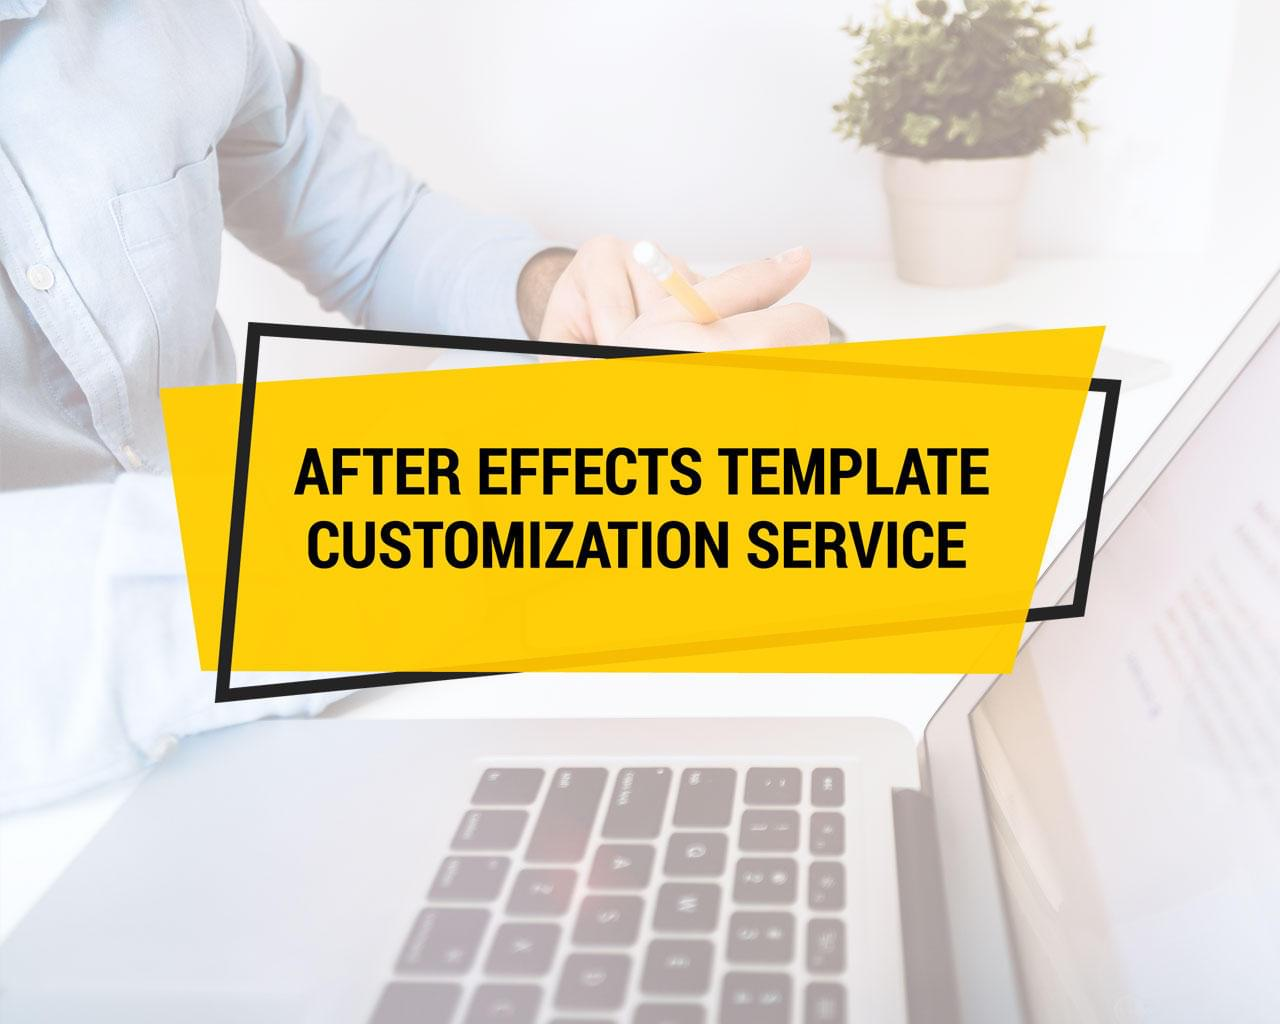 After Effects Template Customization and Video Rendering Service by CleanAndSimple - 111137